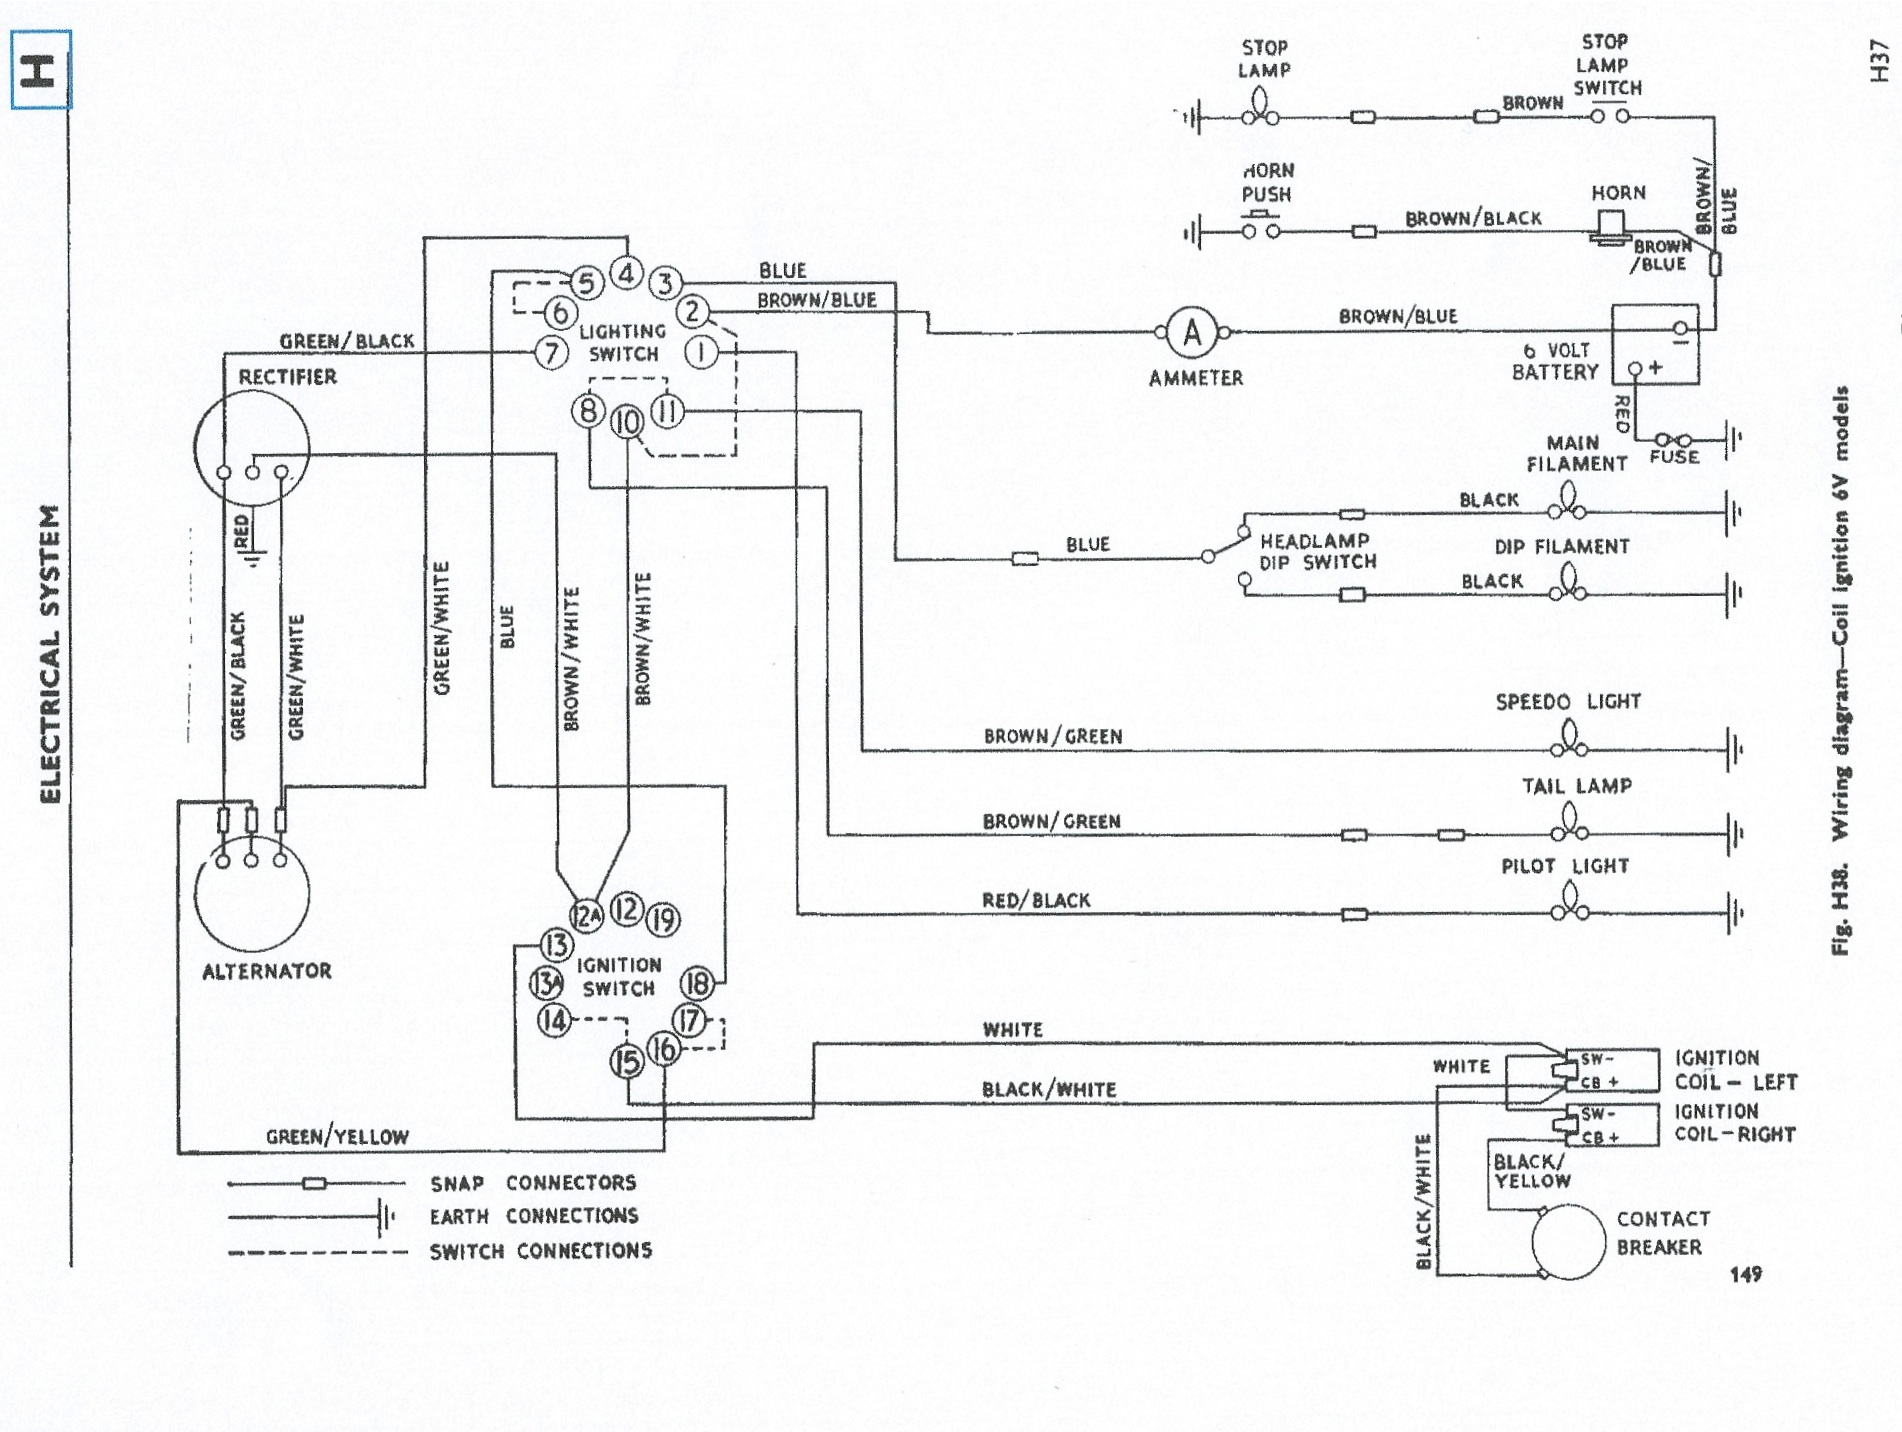 Bsa Wiring Diagram Diagrams Image Free 1969 Experts Of U2022rhevilcloudcouk At